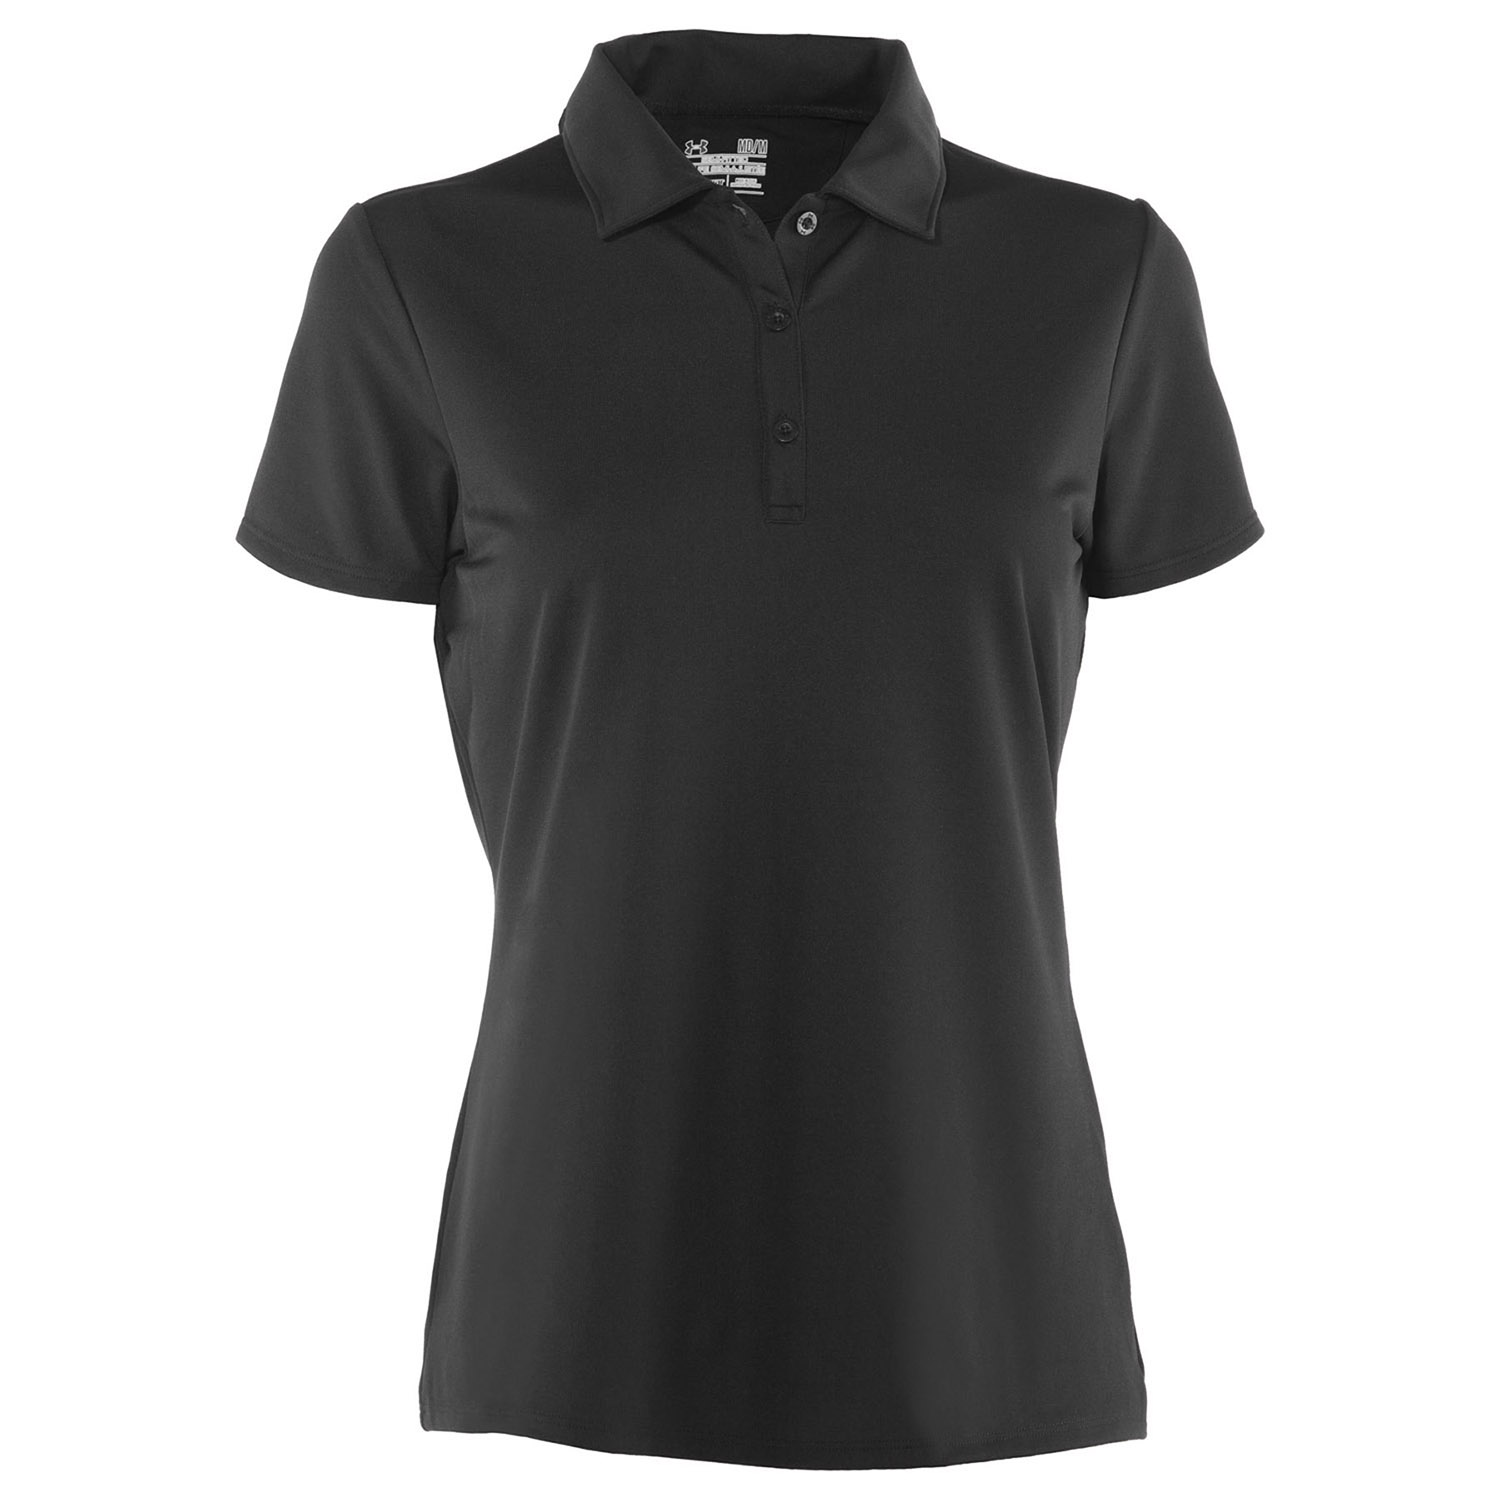 Under Armour Tech Women's Range Polo